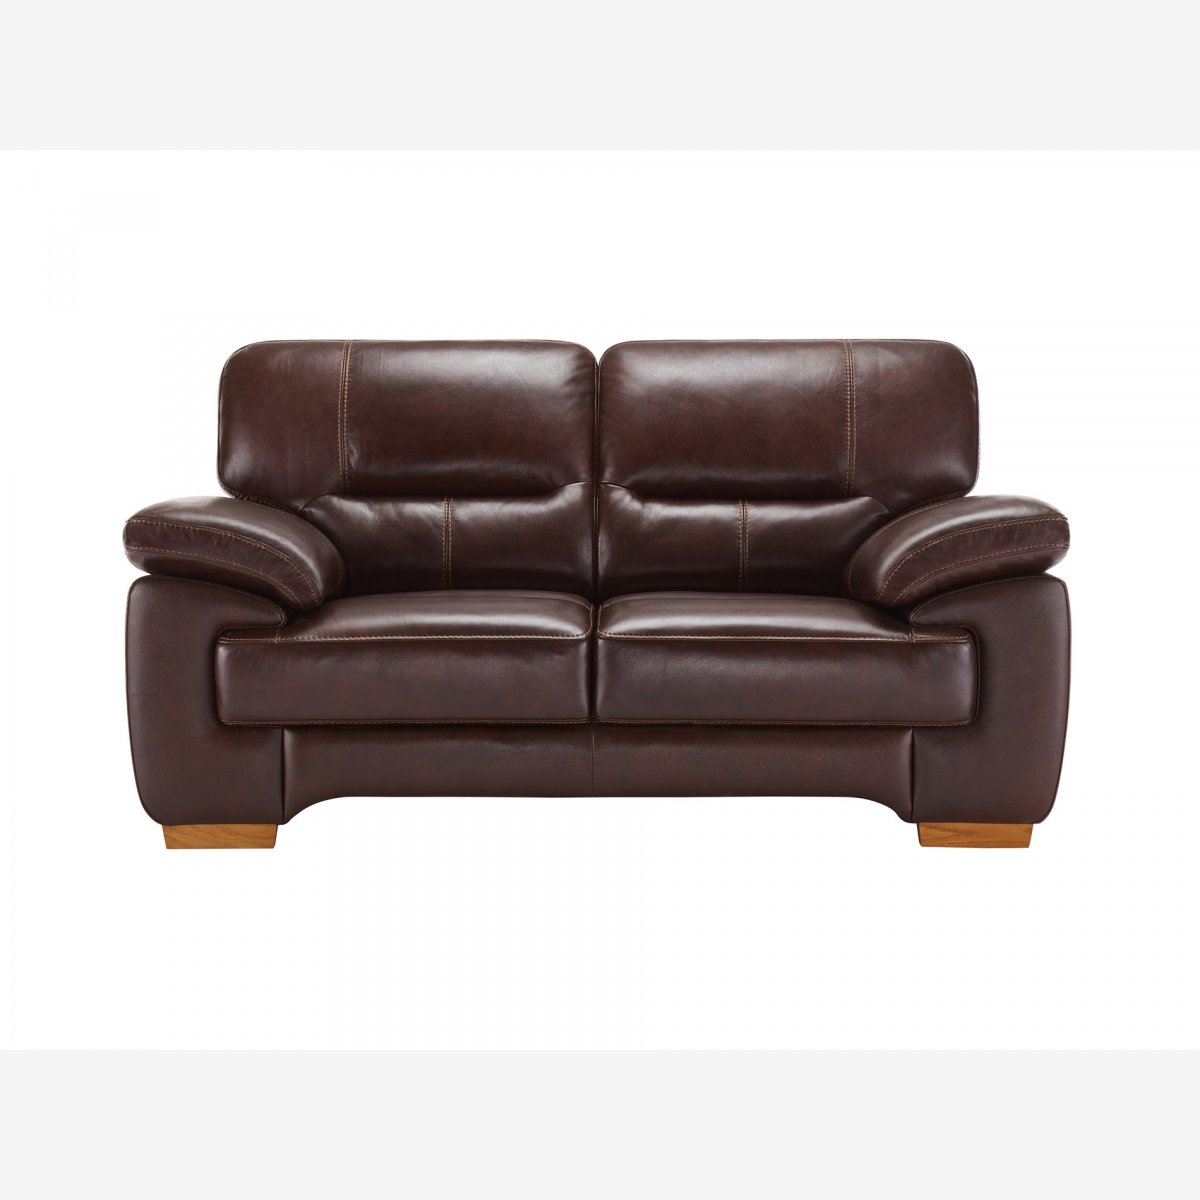 brown leather sofa uk chair company clayton 2 seater in oak furniture land